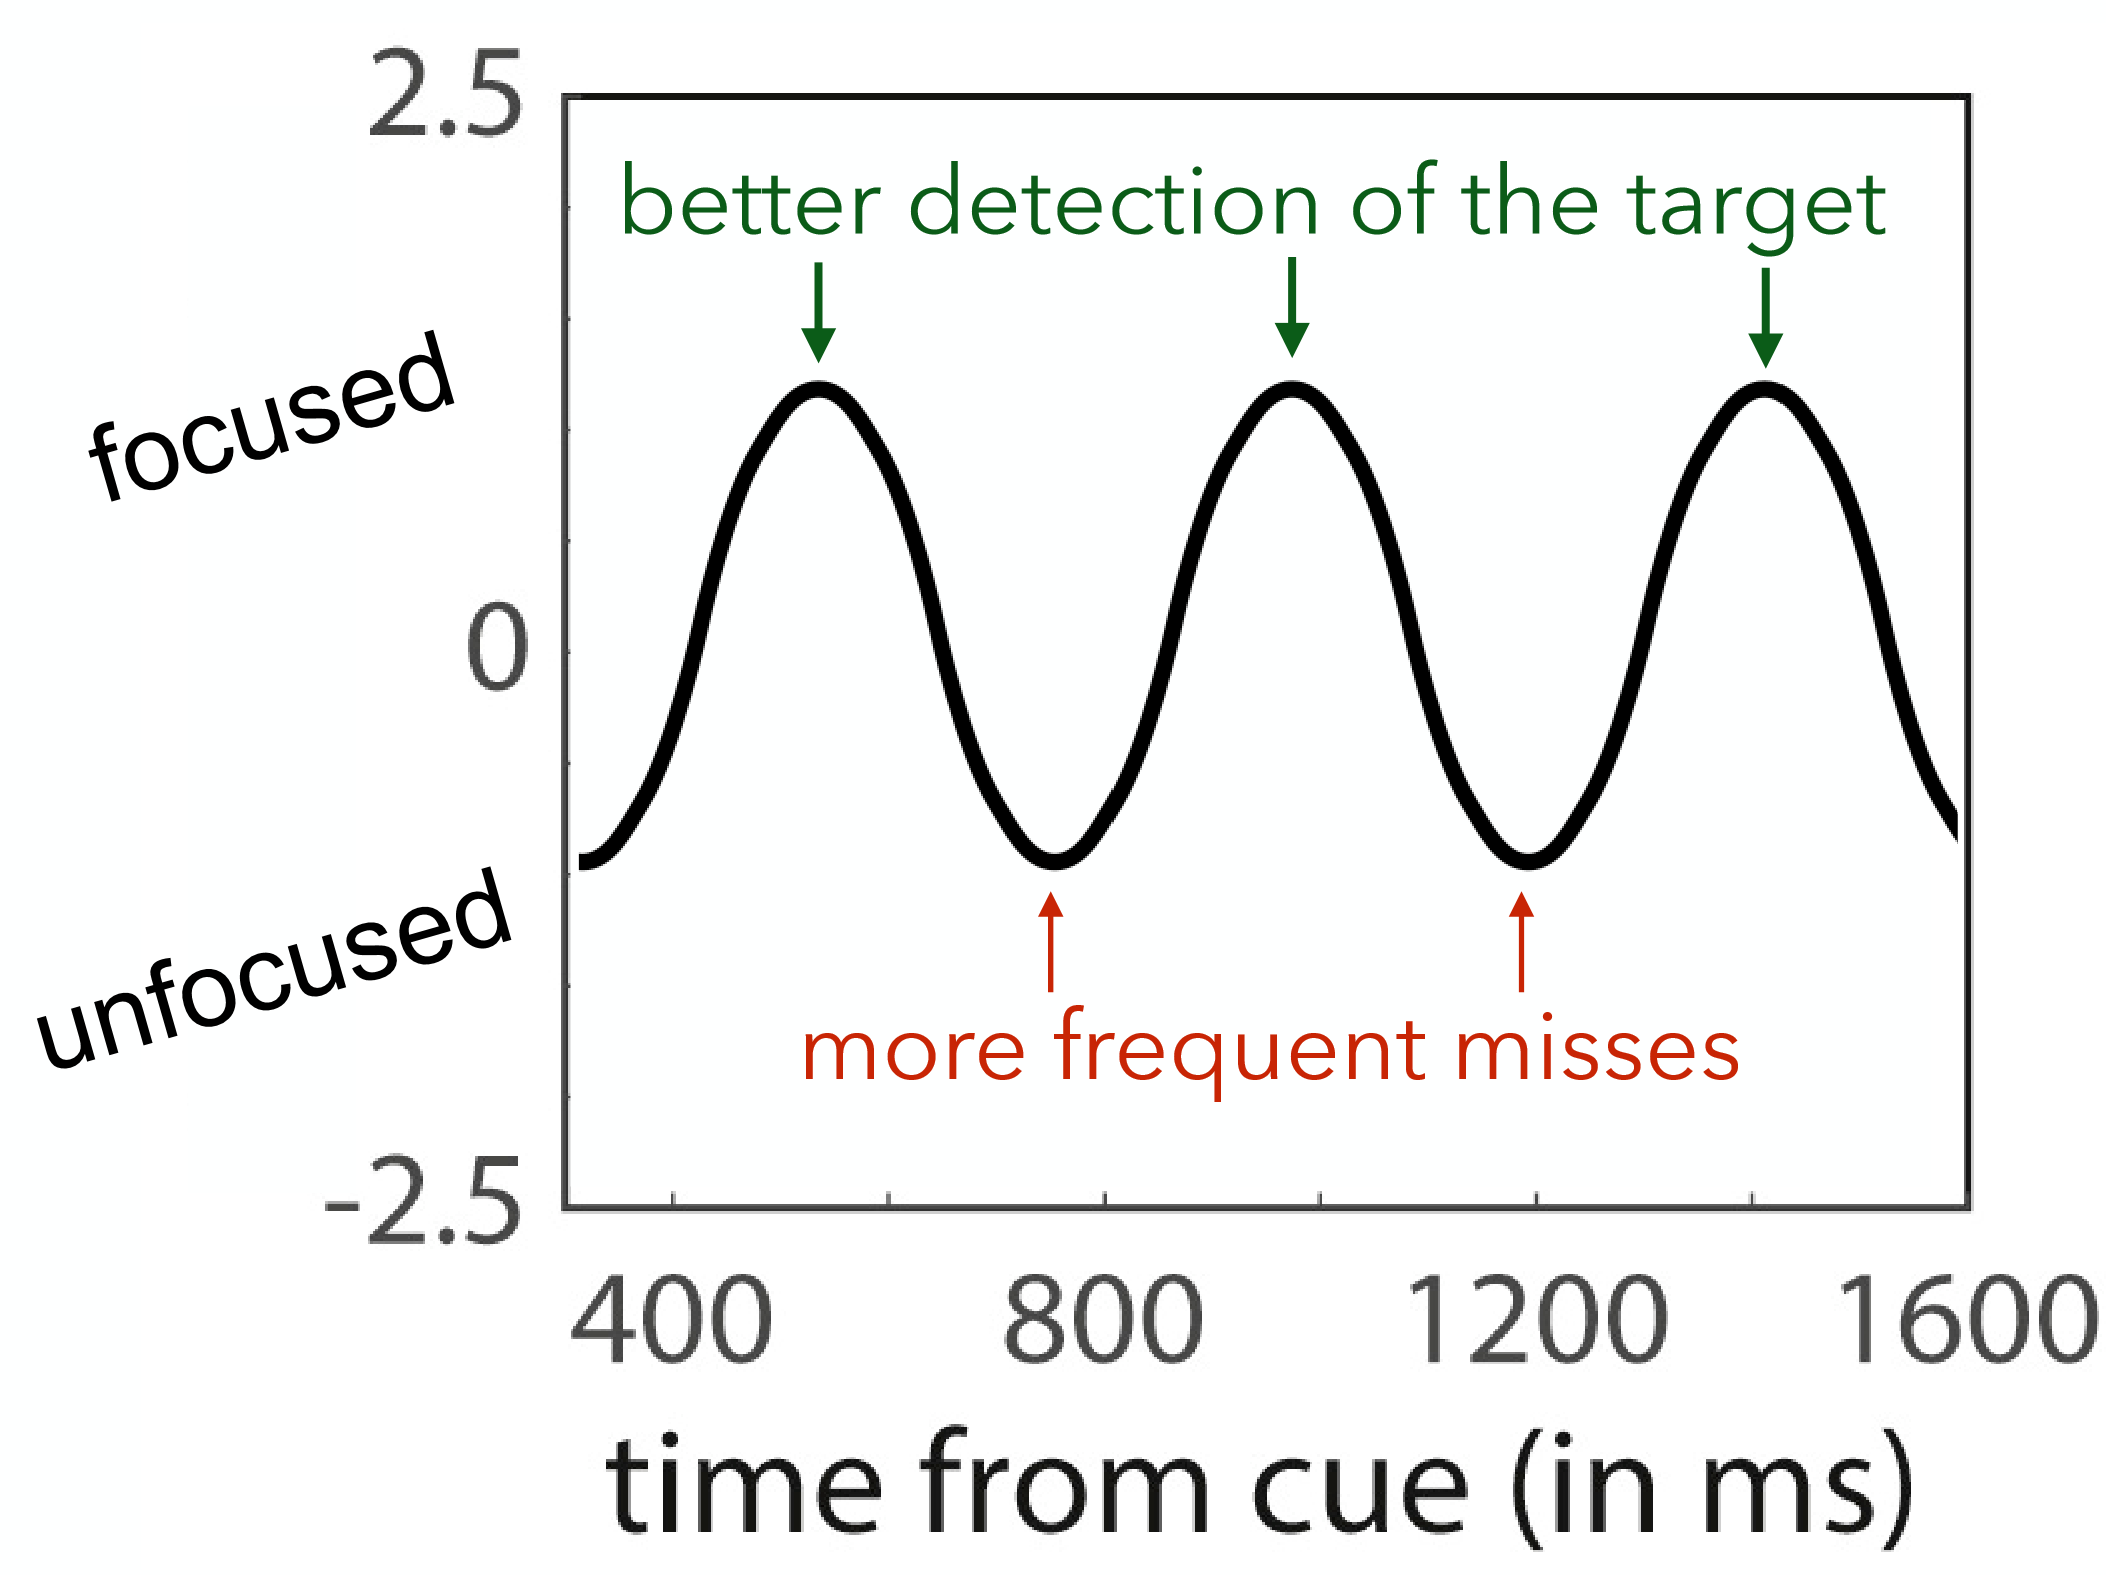 "Figure 2: Attention Fluctuates Between Focused and Unfocused States.  As players attempted to balance sharp focus and broad awareness in the game described in Figure 1, researchers noticed attention fluctuated between focused states (where the target dim light was detected) and unfocused states (where the target was missed, also known as a ""lapse"" of attention). Depending on when the target appeared relative to the cue, players were more or less likely to detect it. (adapted from Fiebelkorn, 2018)"